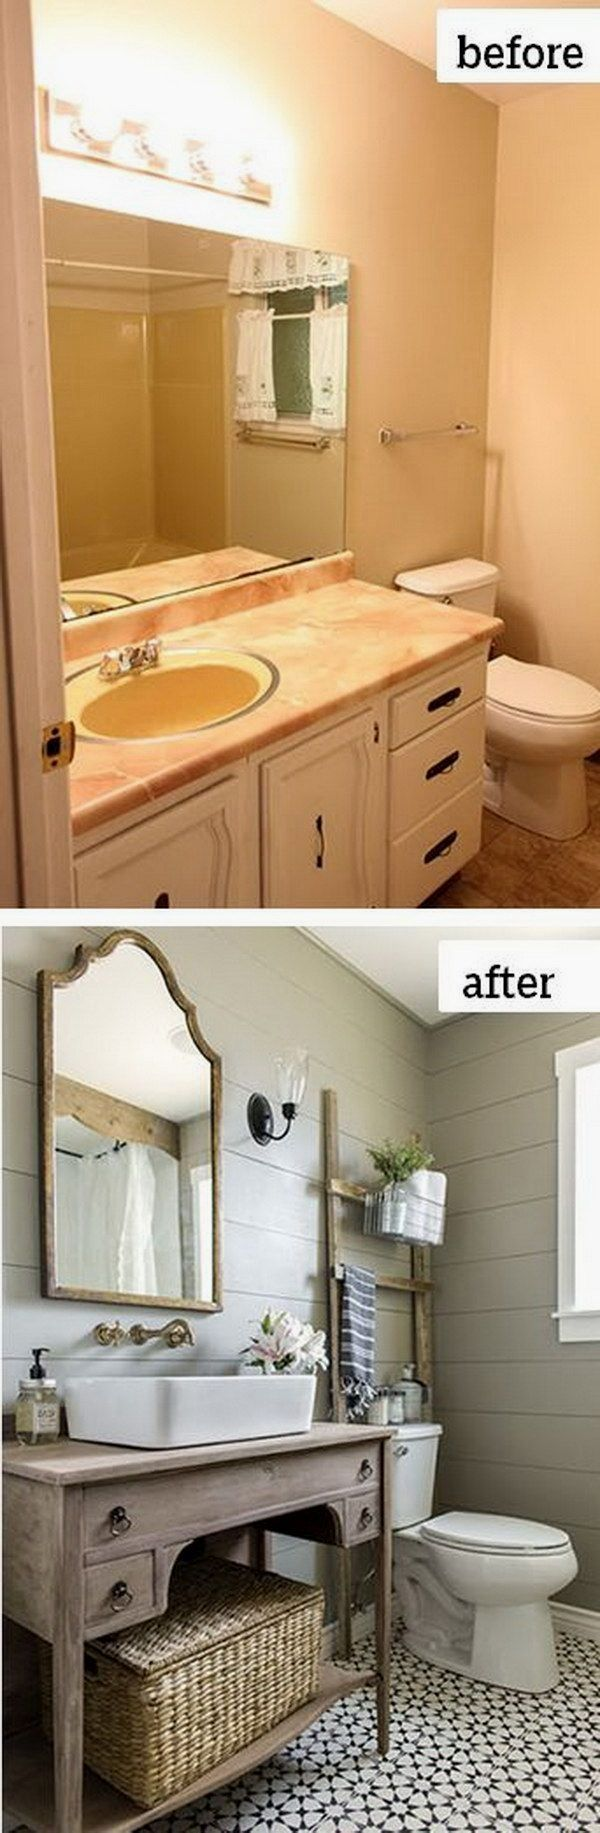 best household images on pinterest cool ideas baby bedroom and